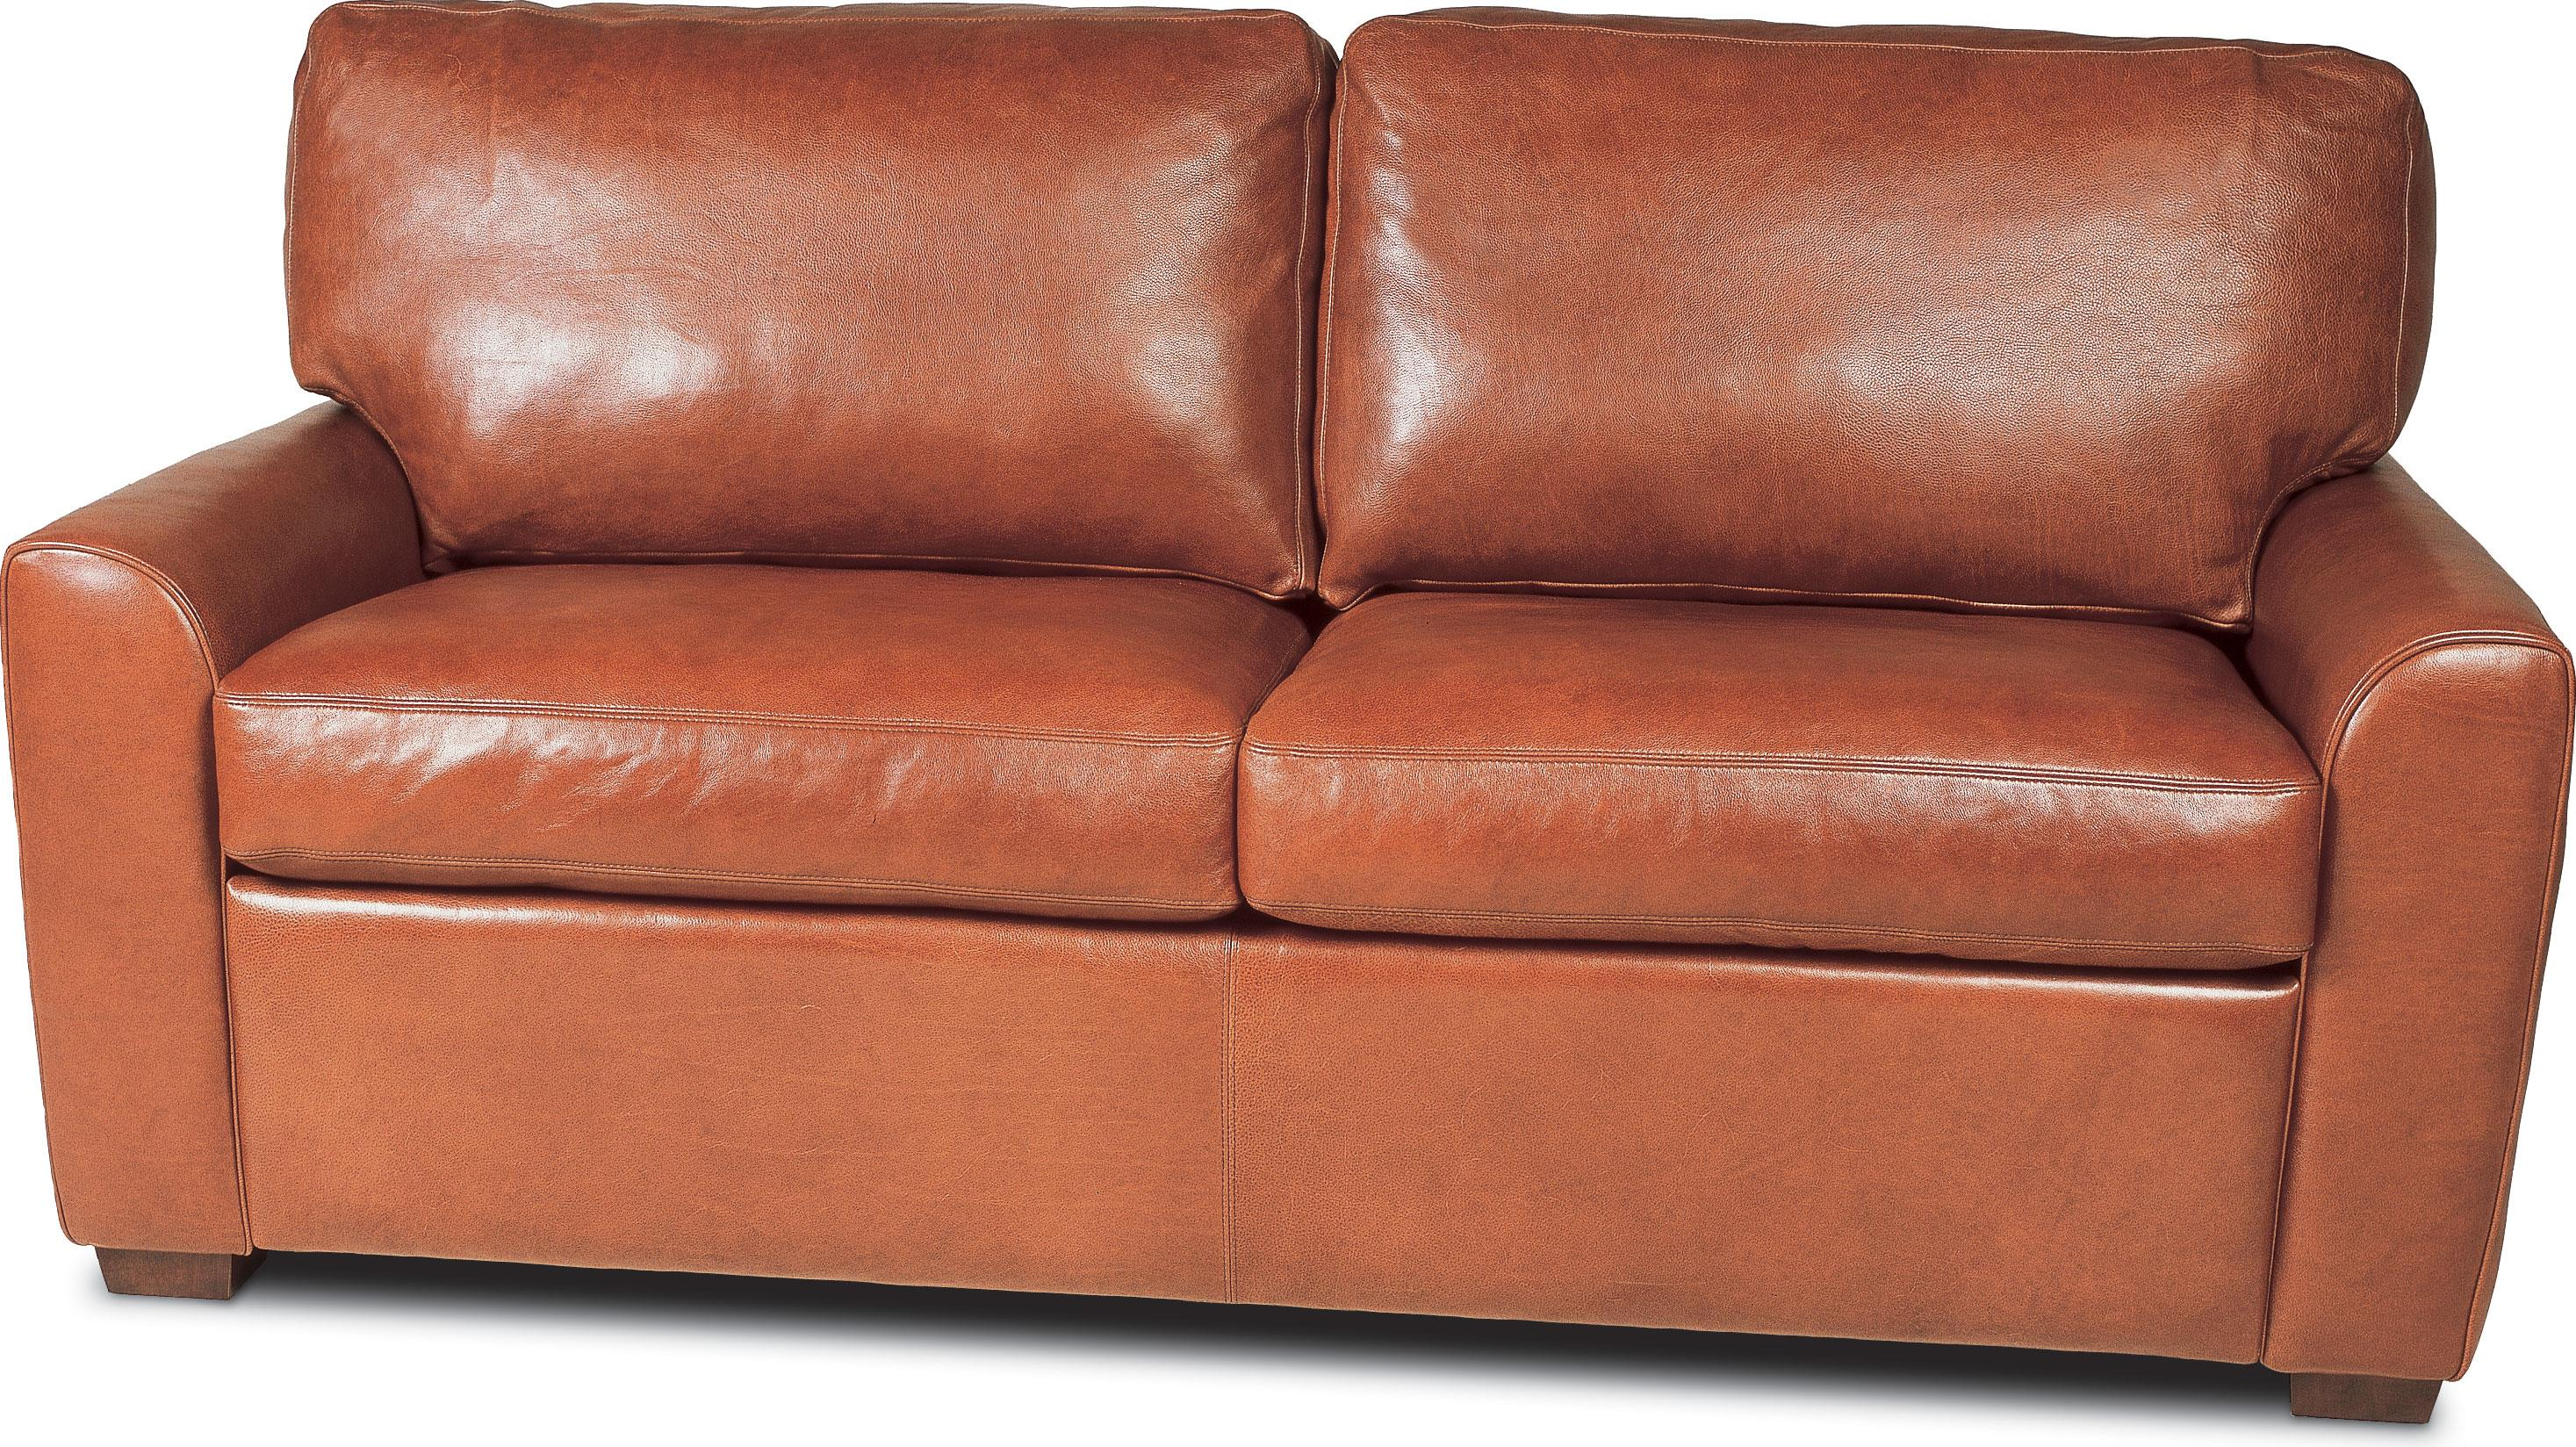 Kaden Loveseat by American Leather at Williams & Kay